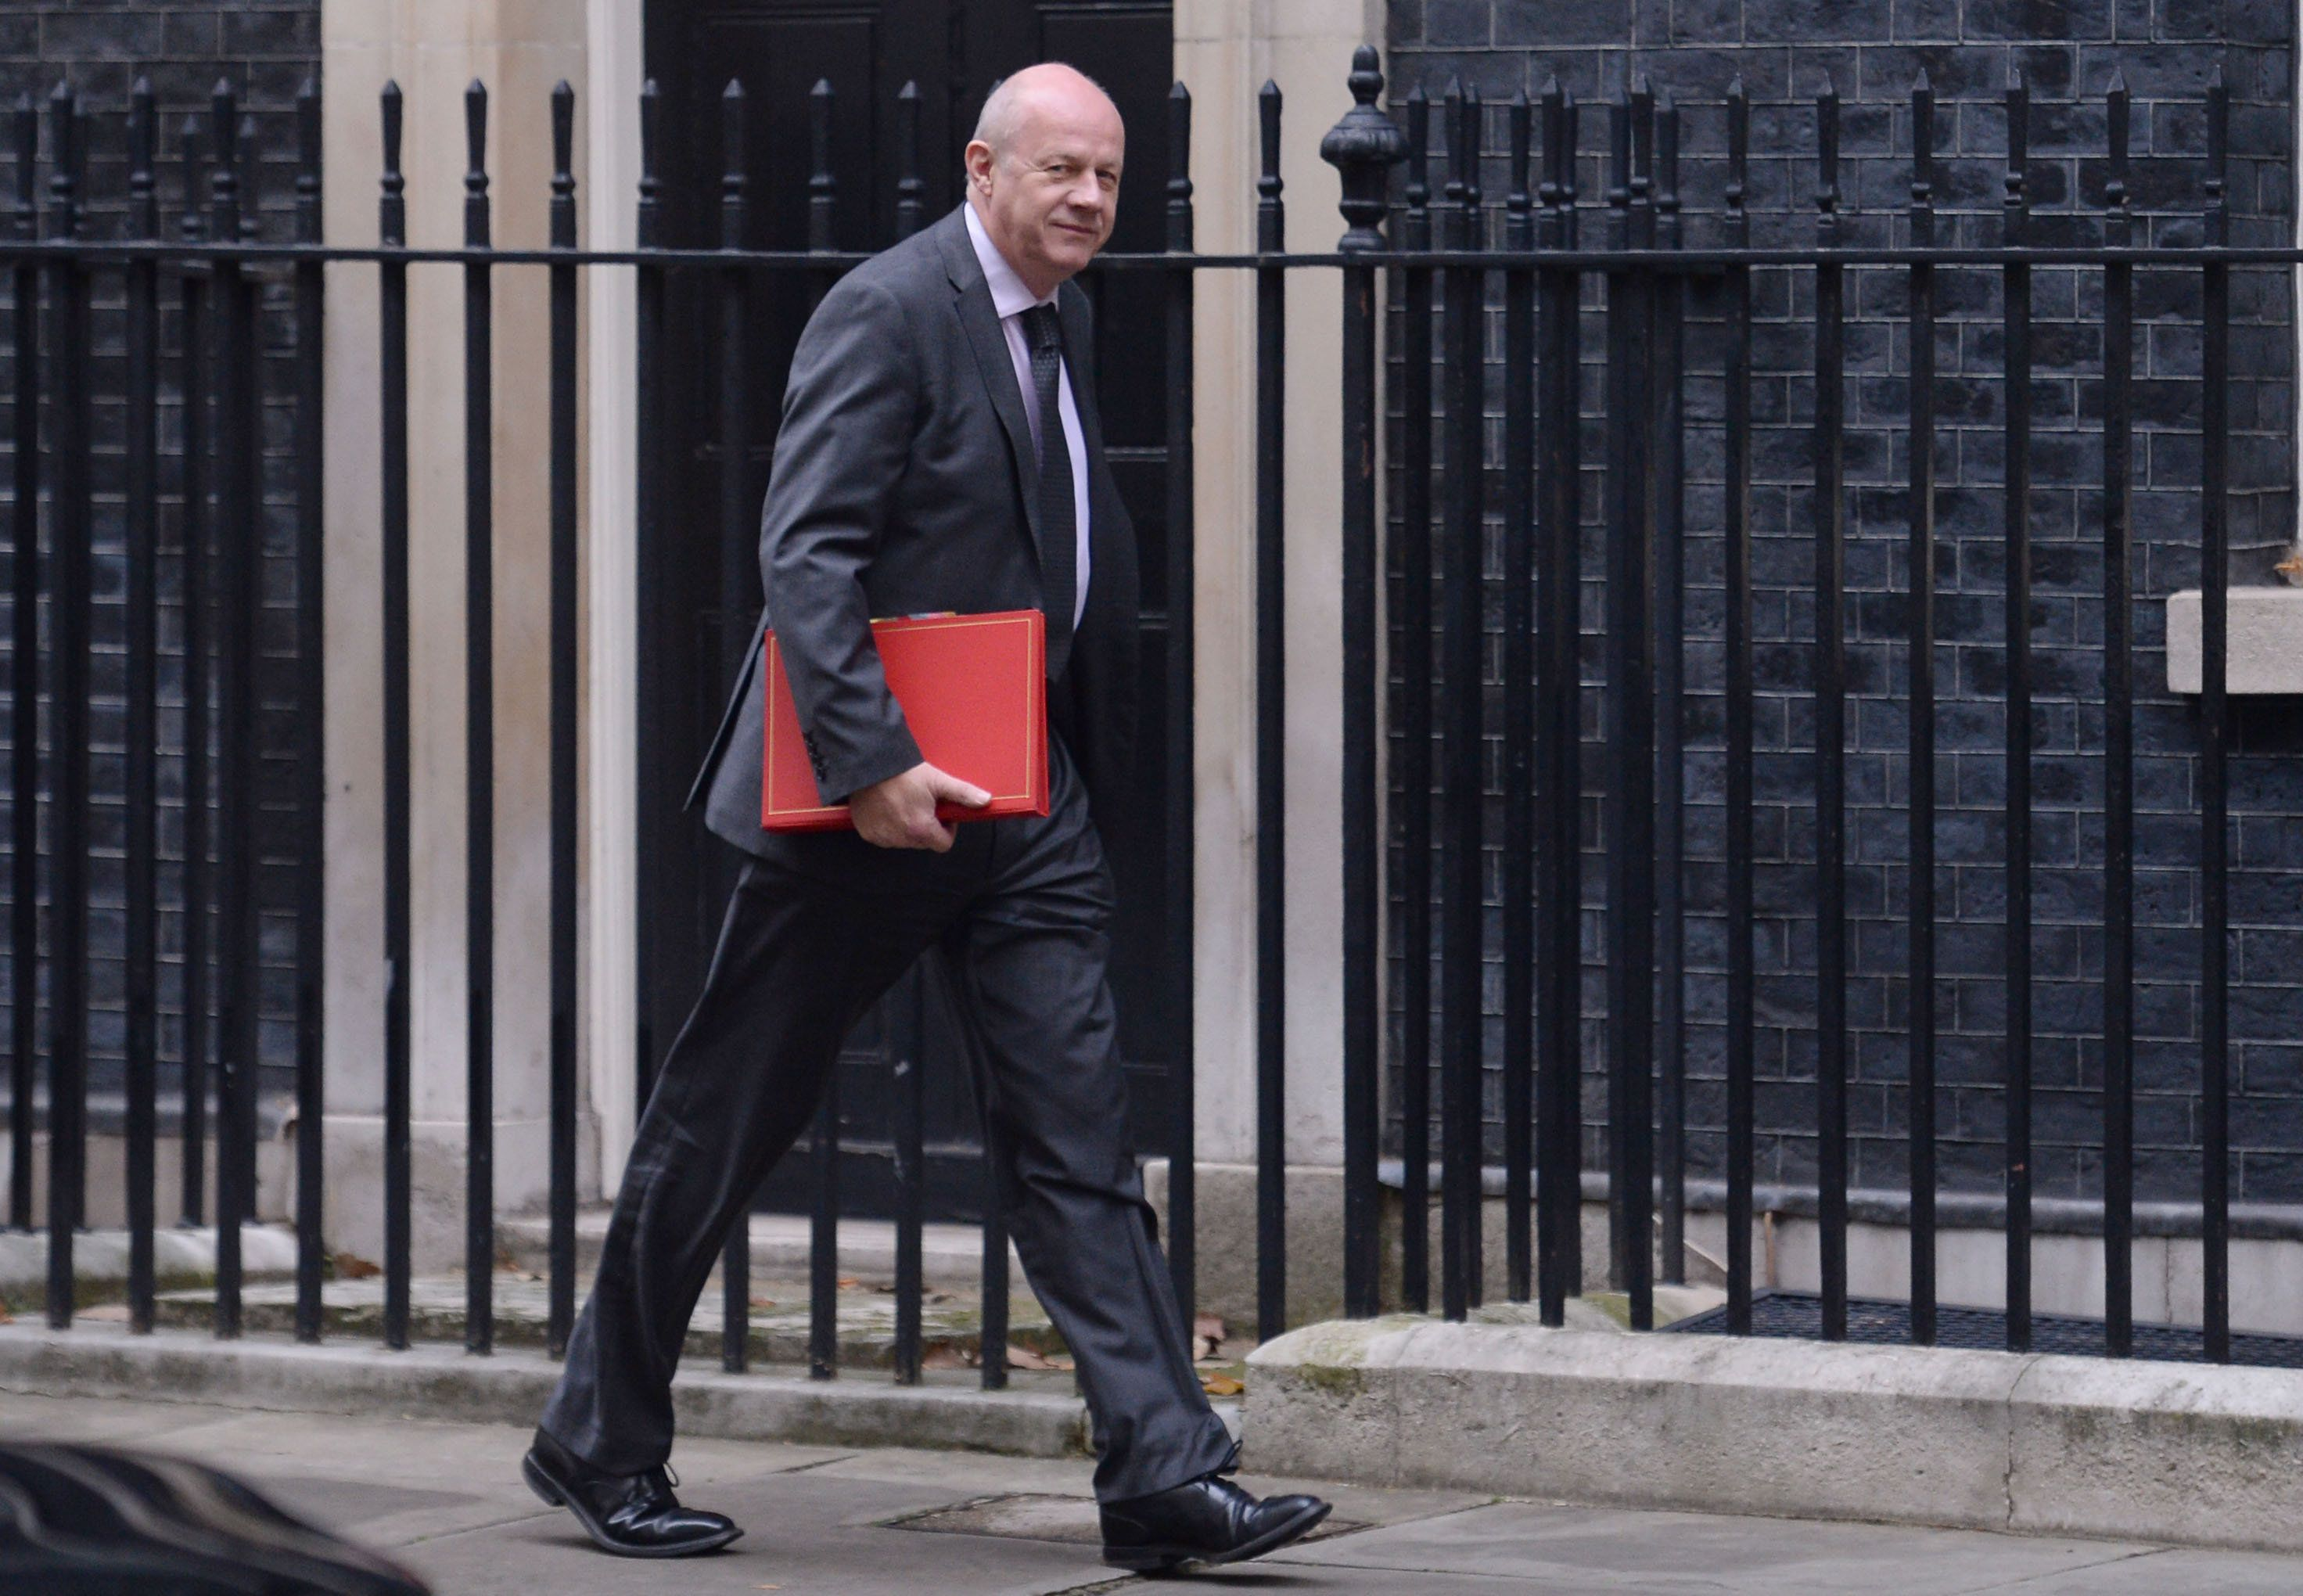 Damian Green is being investigated by the Cabinet Secretary over claims he made inappropriate advances...